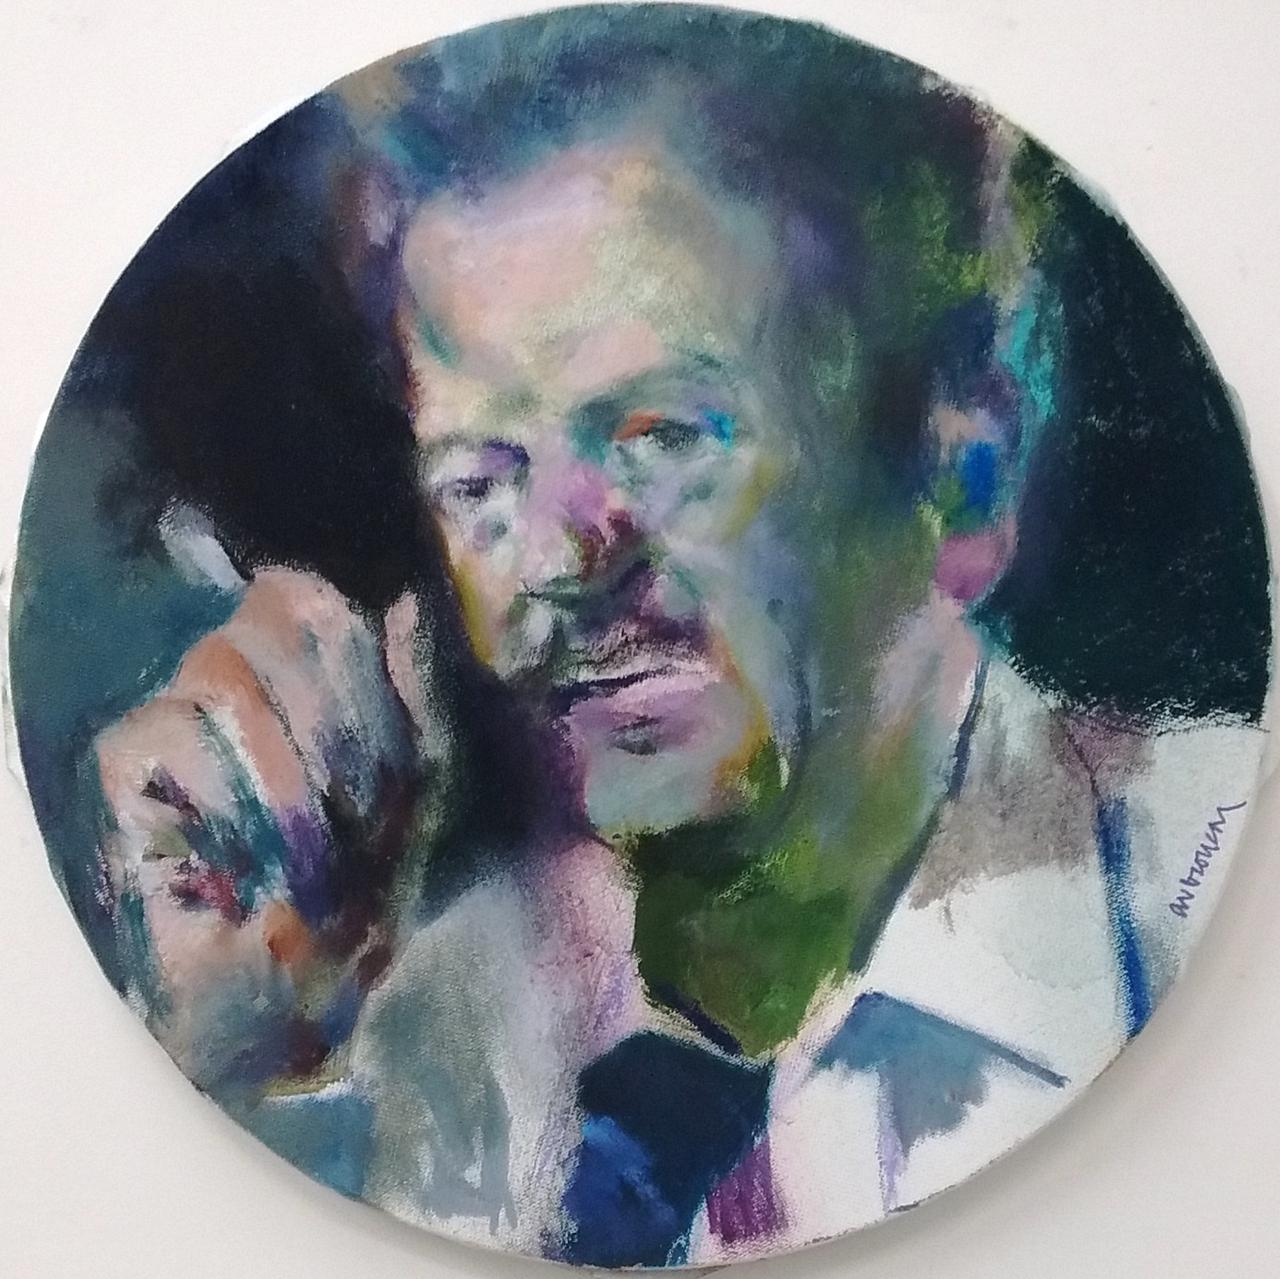 Alexandros Veroukas, Vassiis Tsitsanis, oil on canvas, 40 x 40 cm, 2015